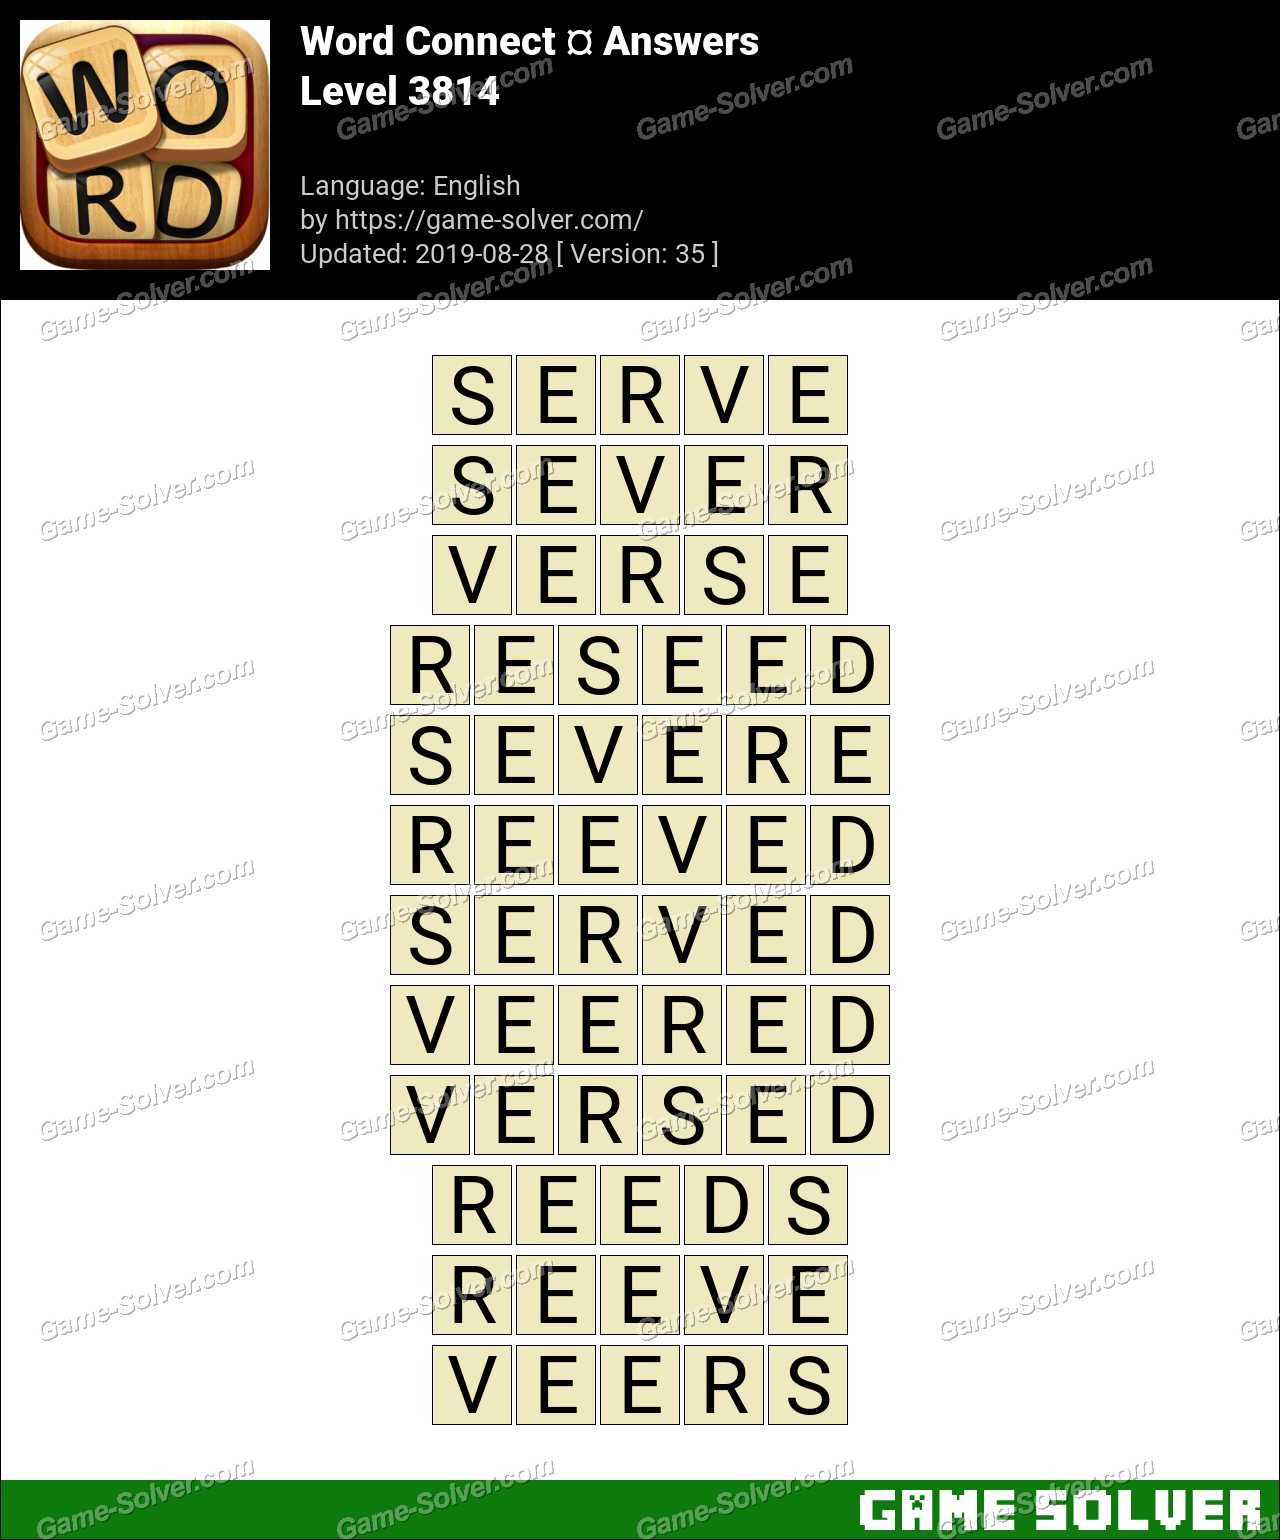 Word Connect Level 3814 Answers